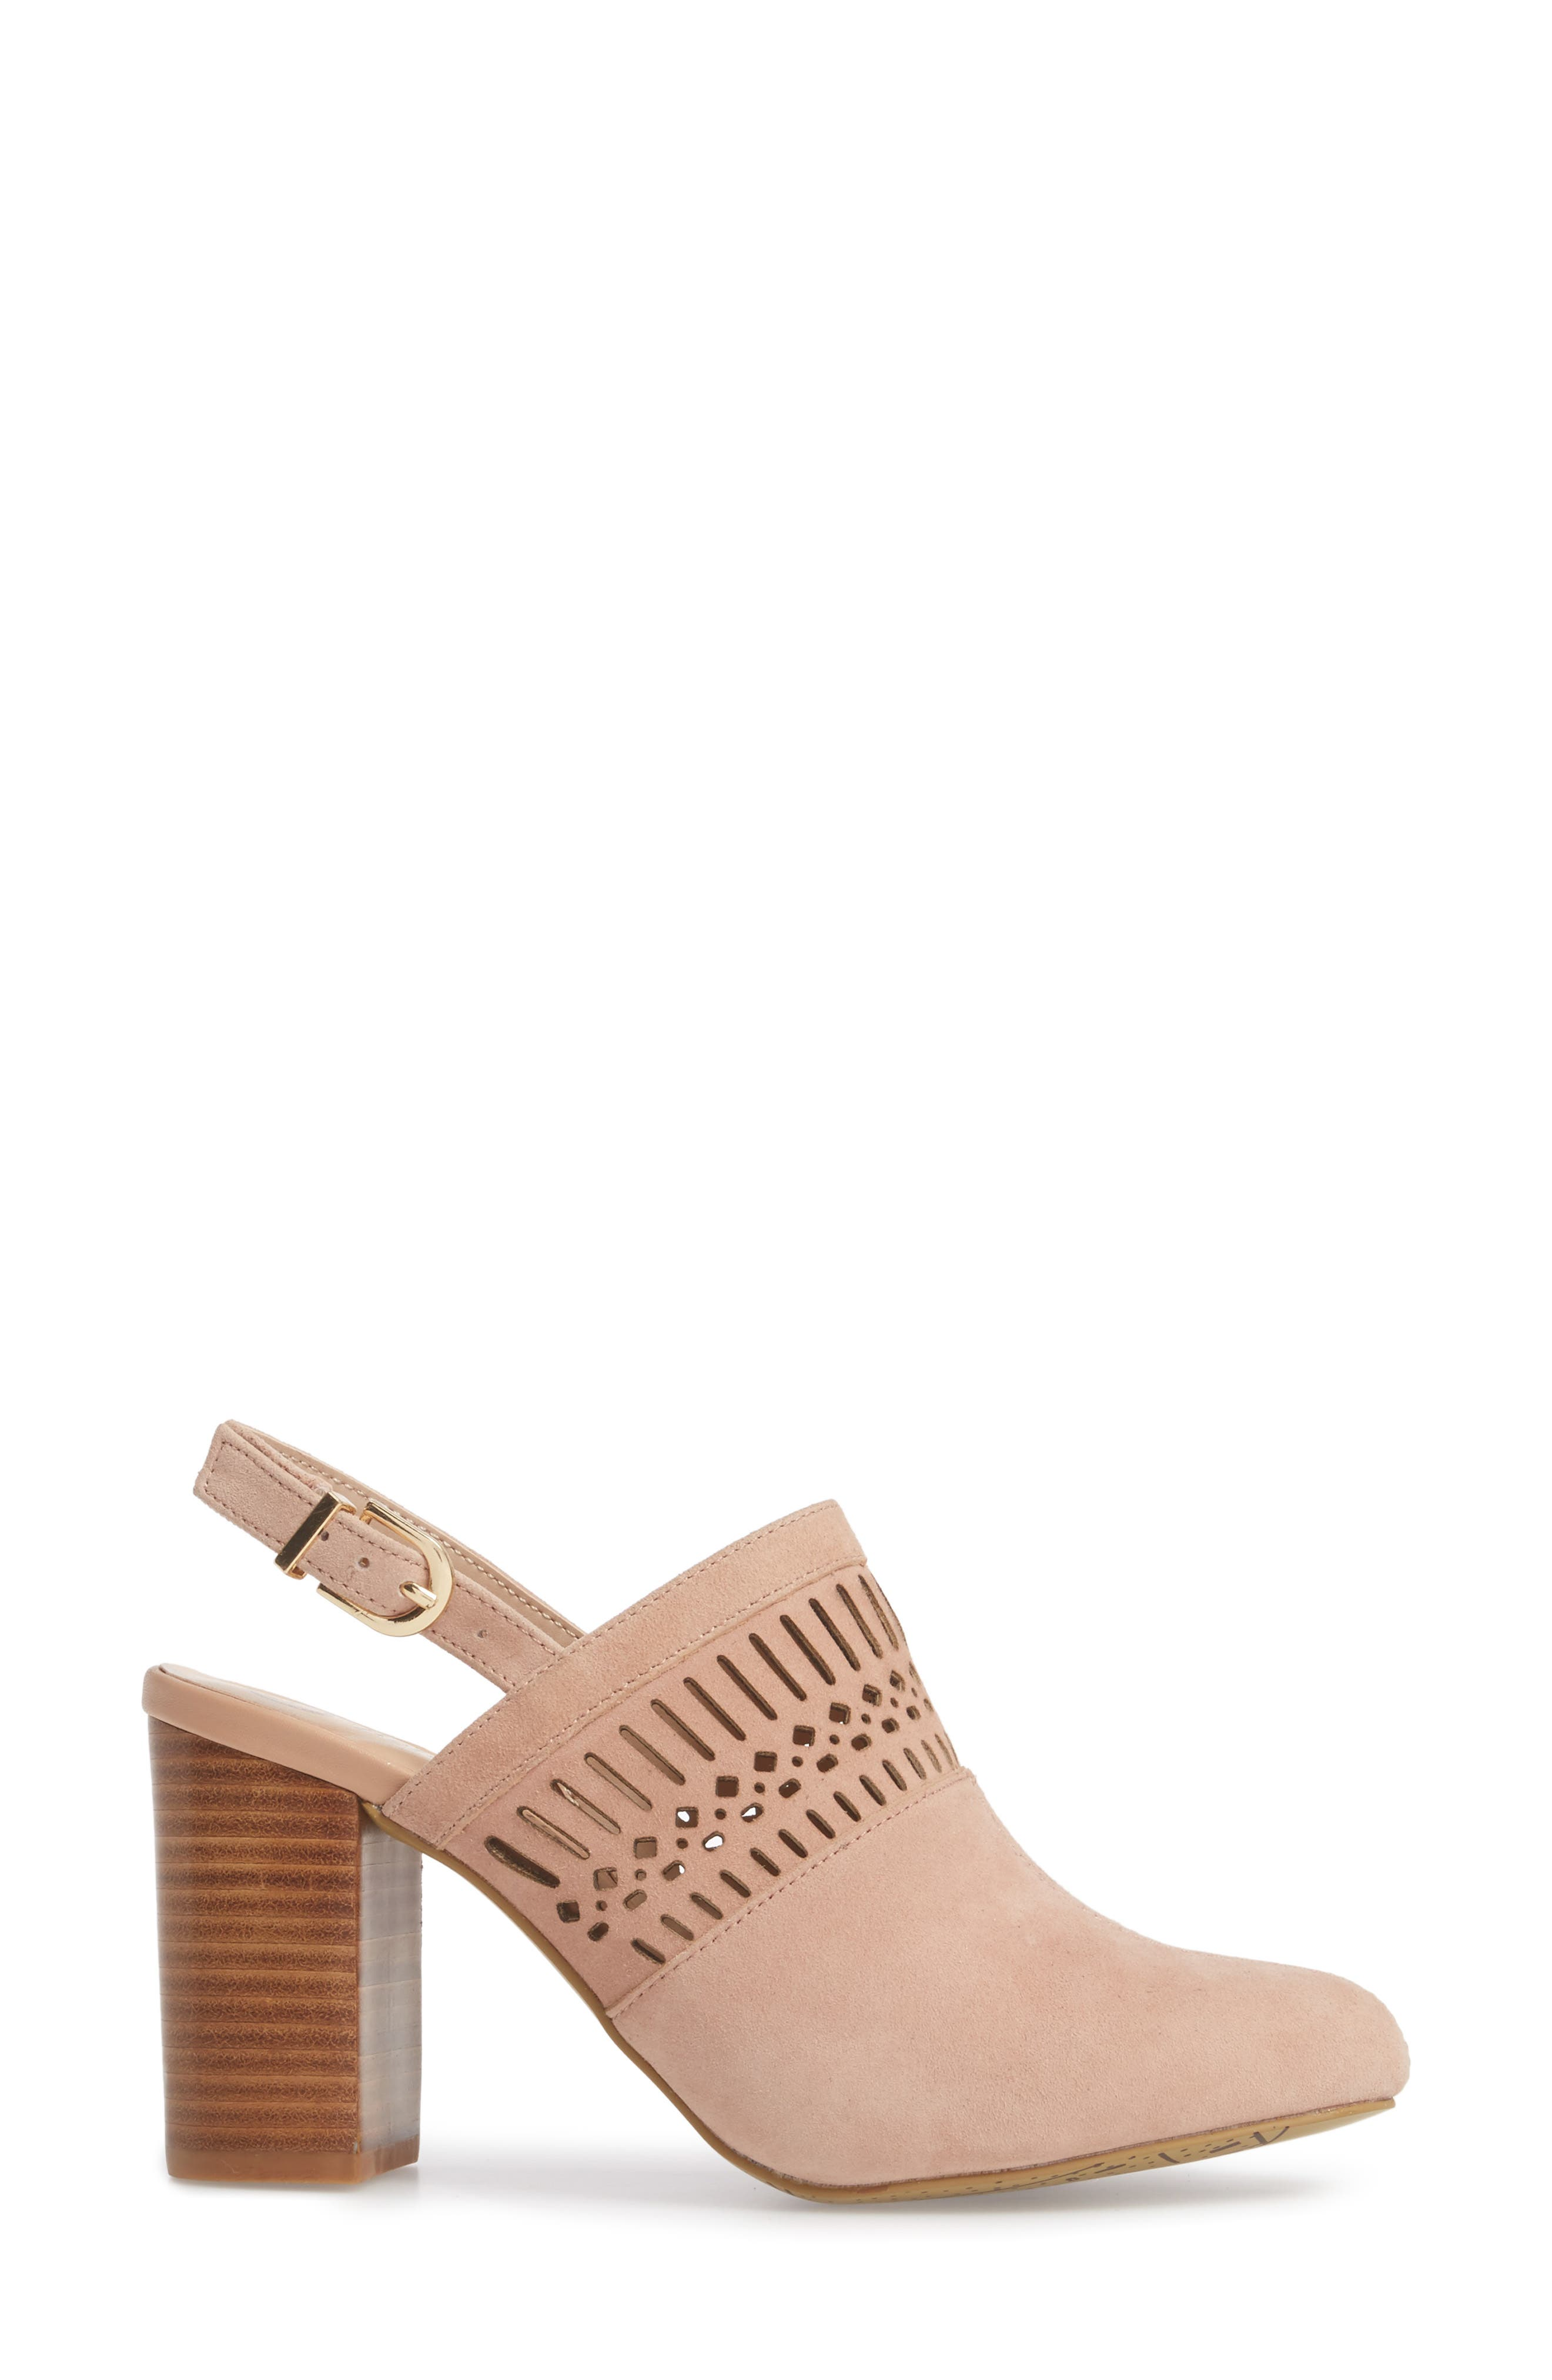 Nox Slingback Perforated Pump,                             Alternate thumbnail 3, color,                             Blush Suede